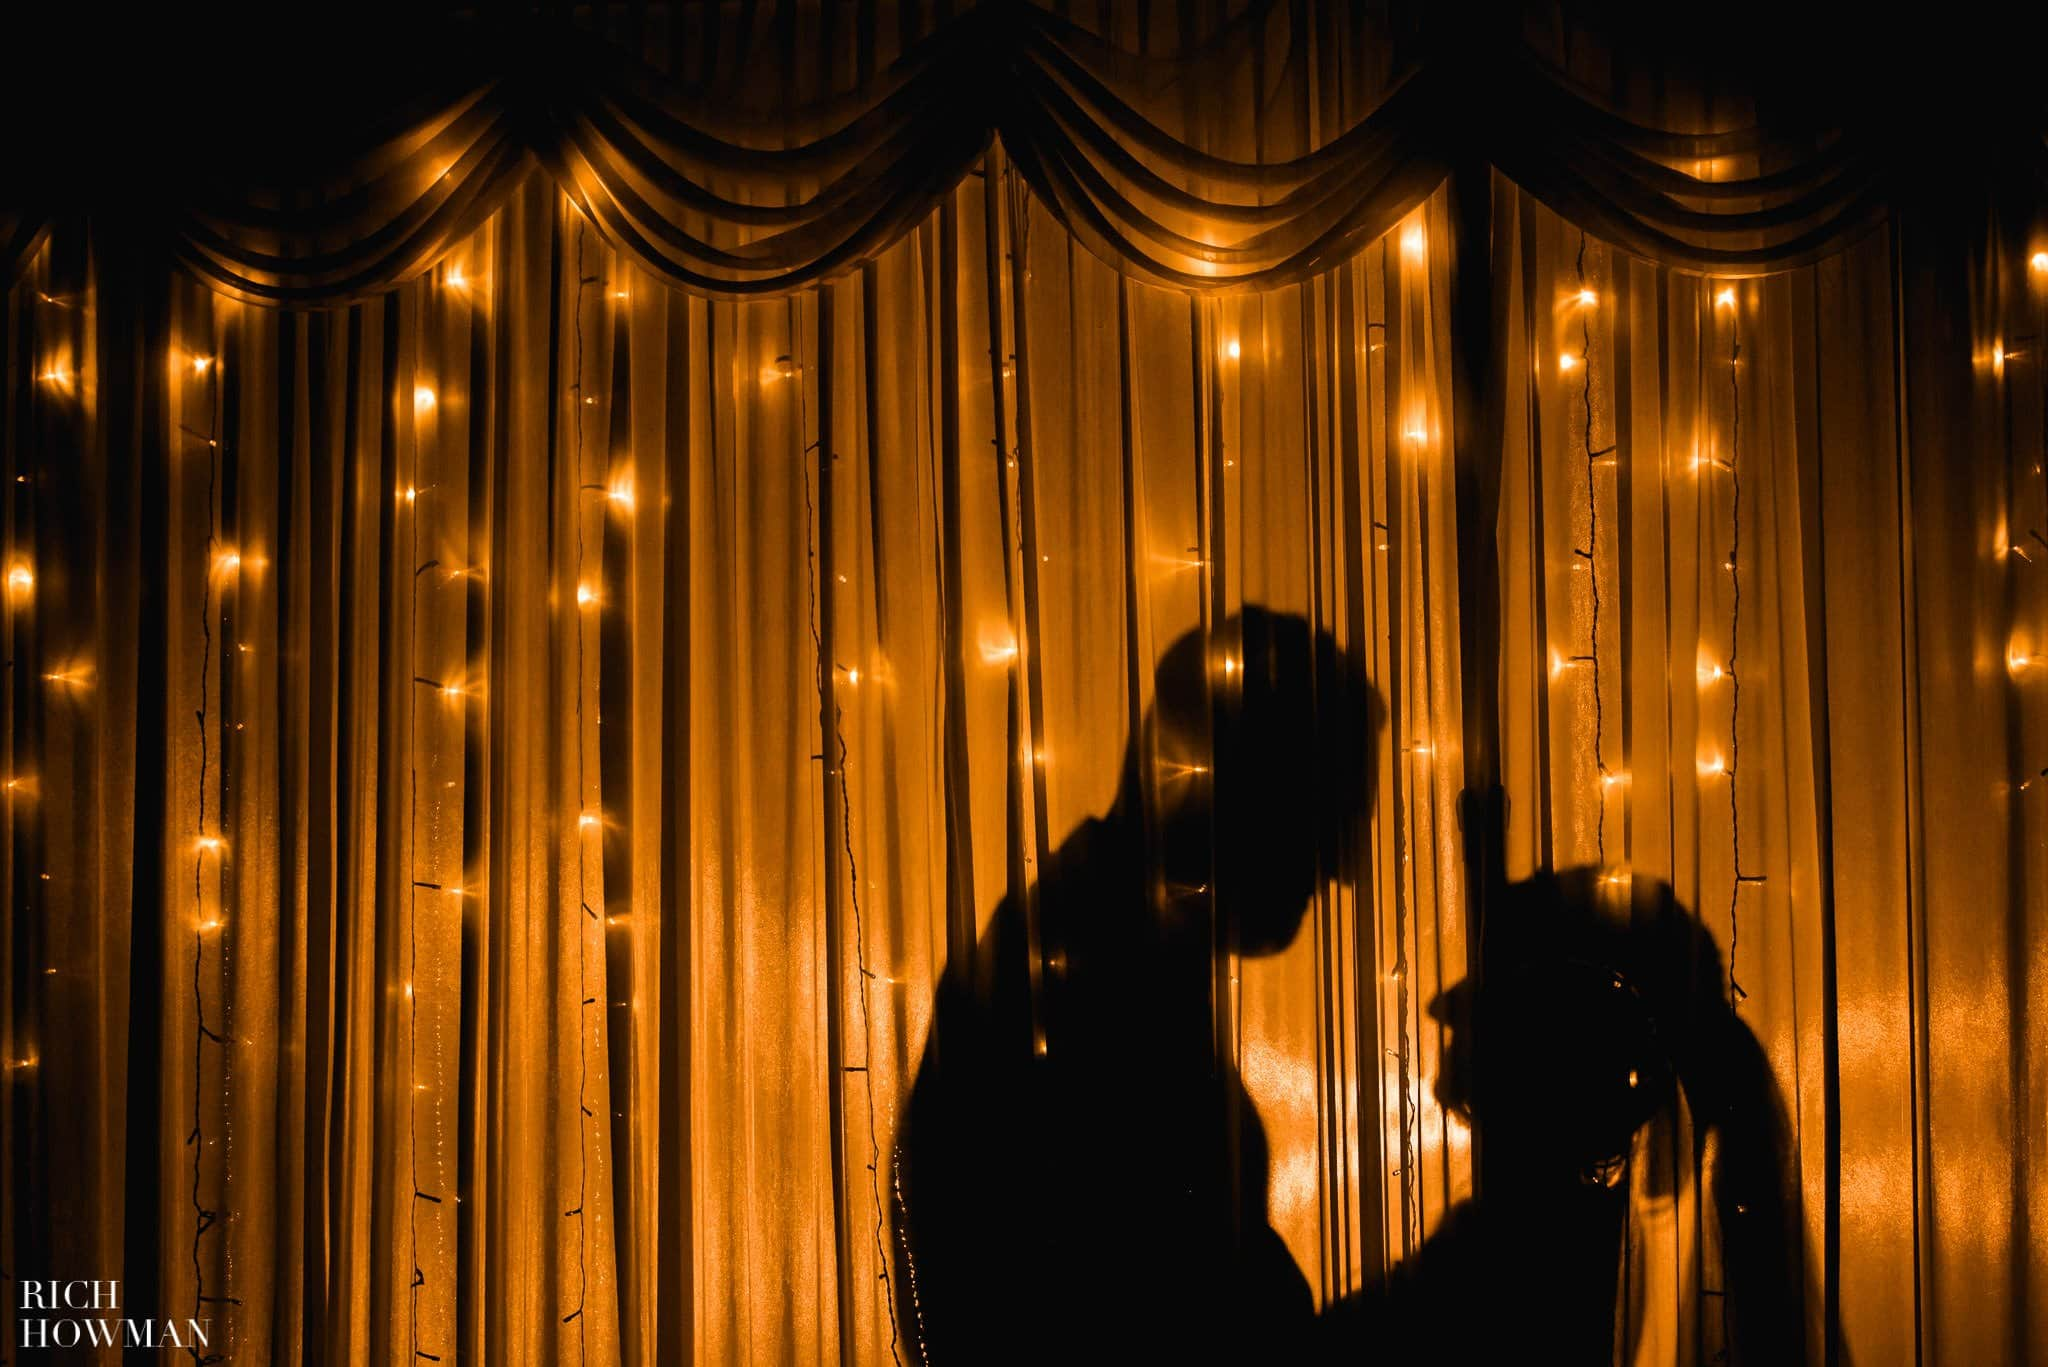 Newlyweds silhouetted on curtains during their wedding reception